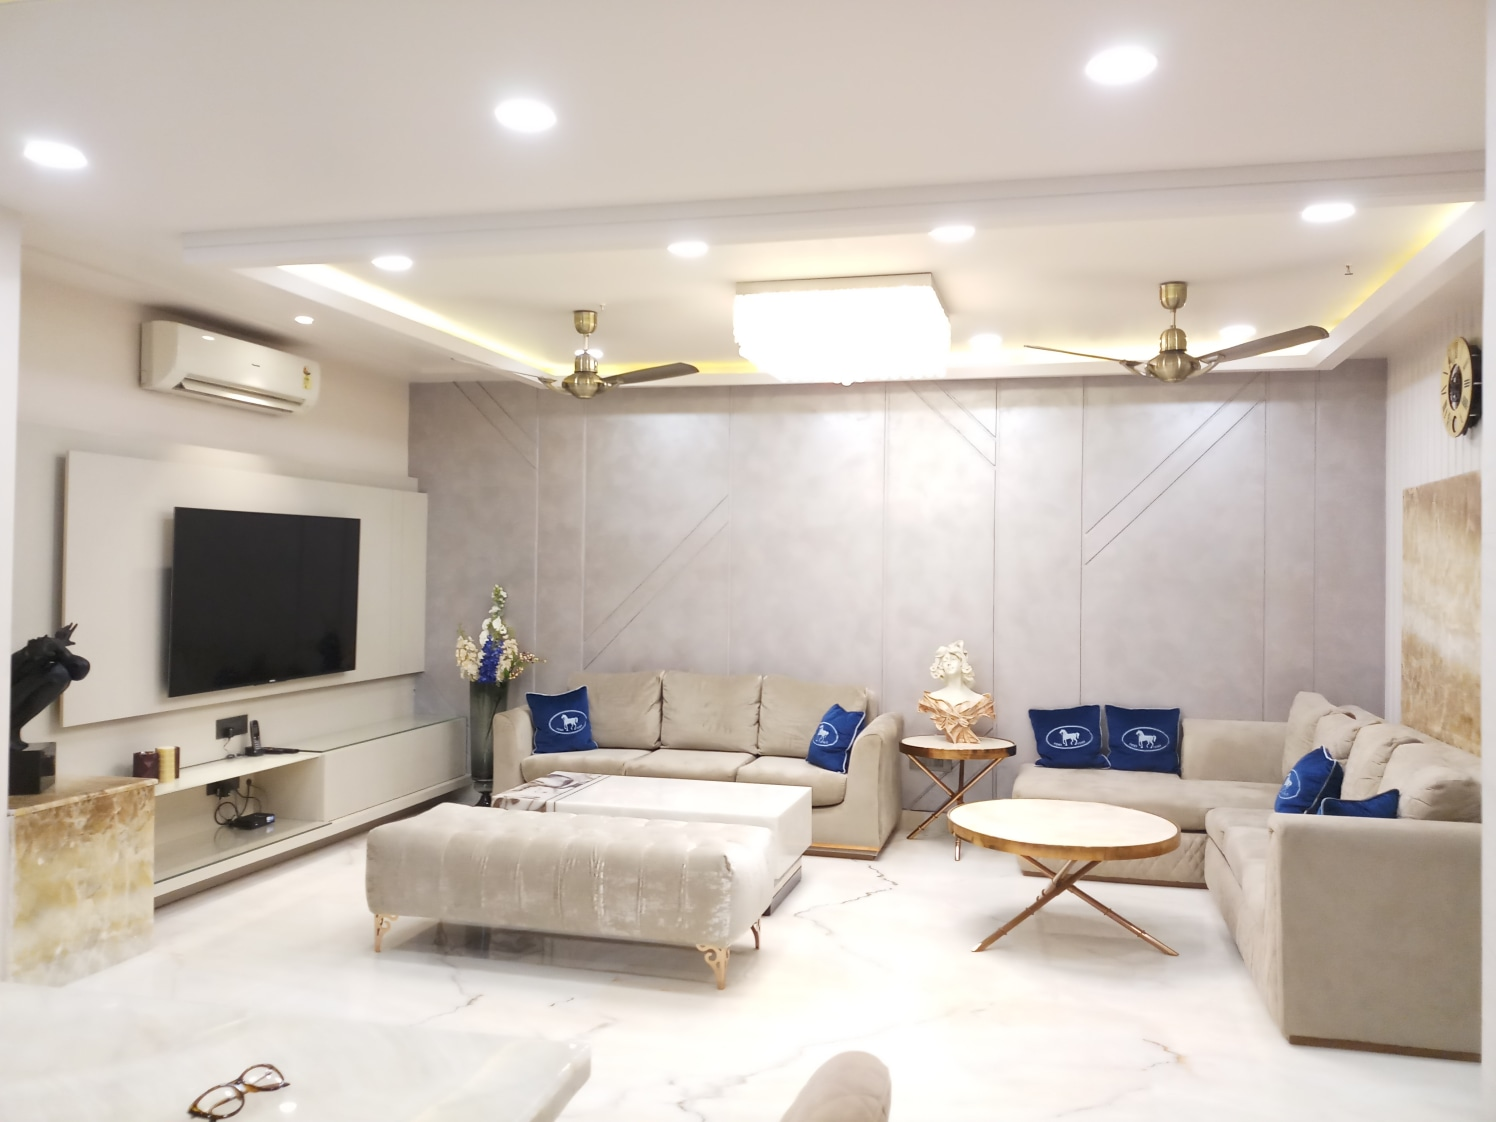 White Themed Living Room with White L Shaped Sofa Set and Circular Centre Table by Sumita Mehra Living-room Contemporary | Interior Design Photos & Ideas